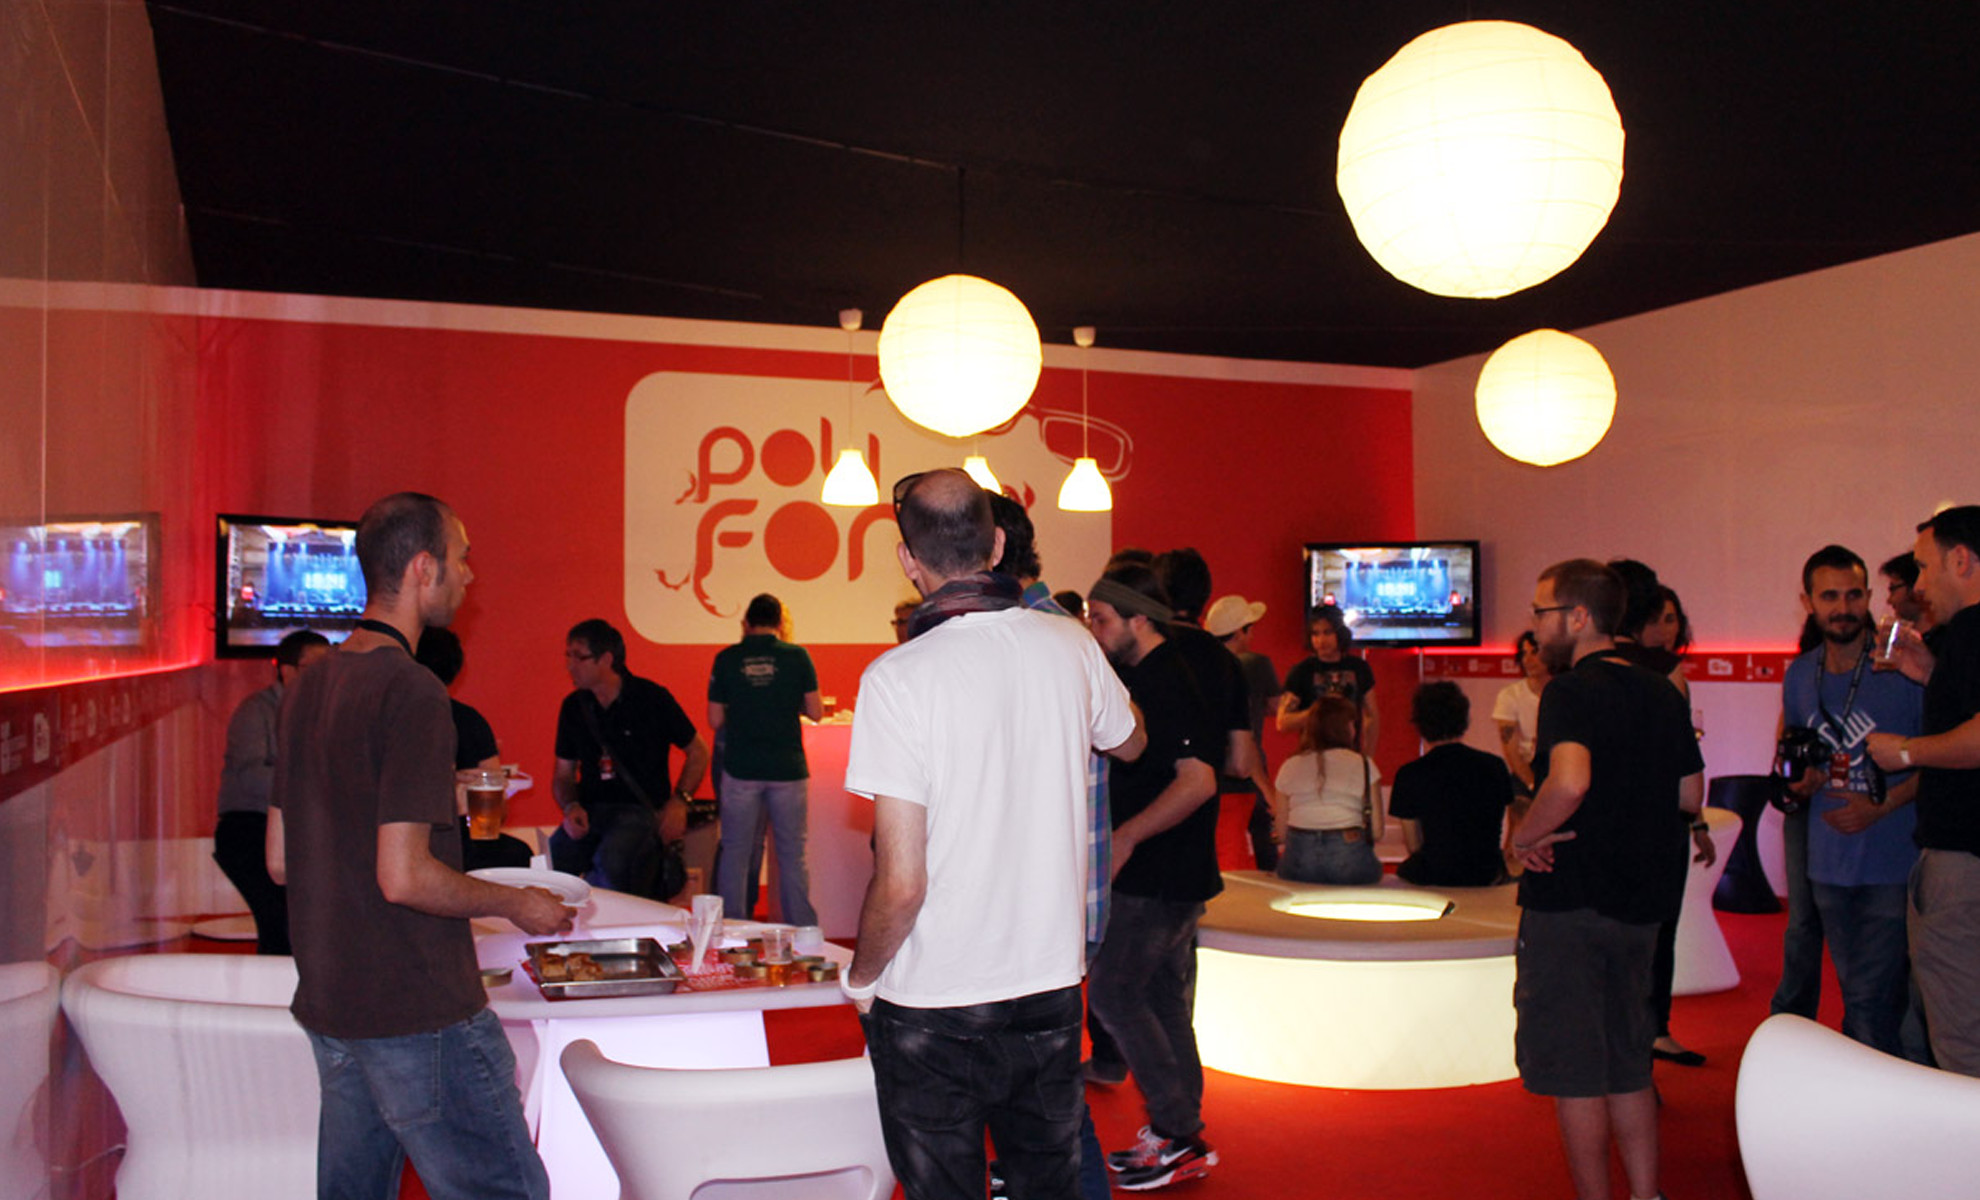 Zona VIP Polifonik Sound 2012 - Vista 4